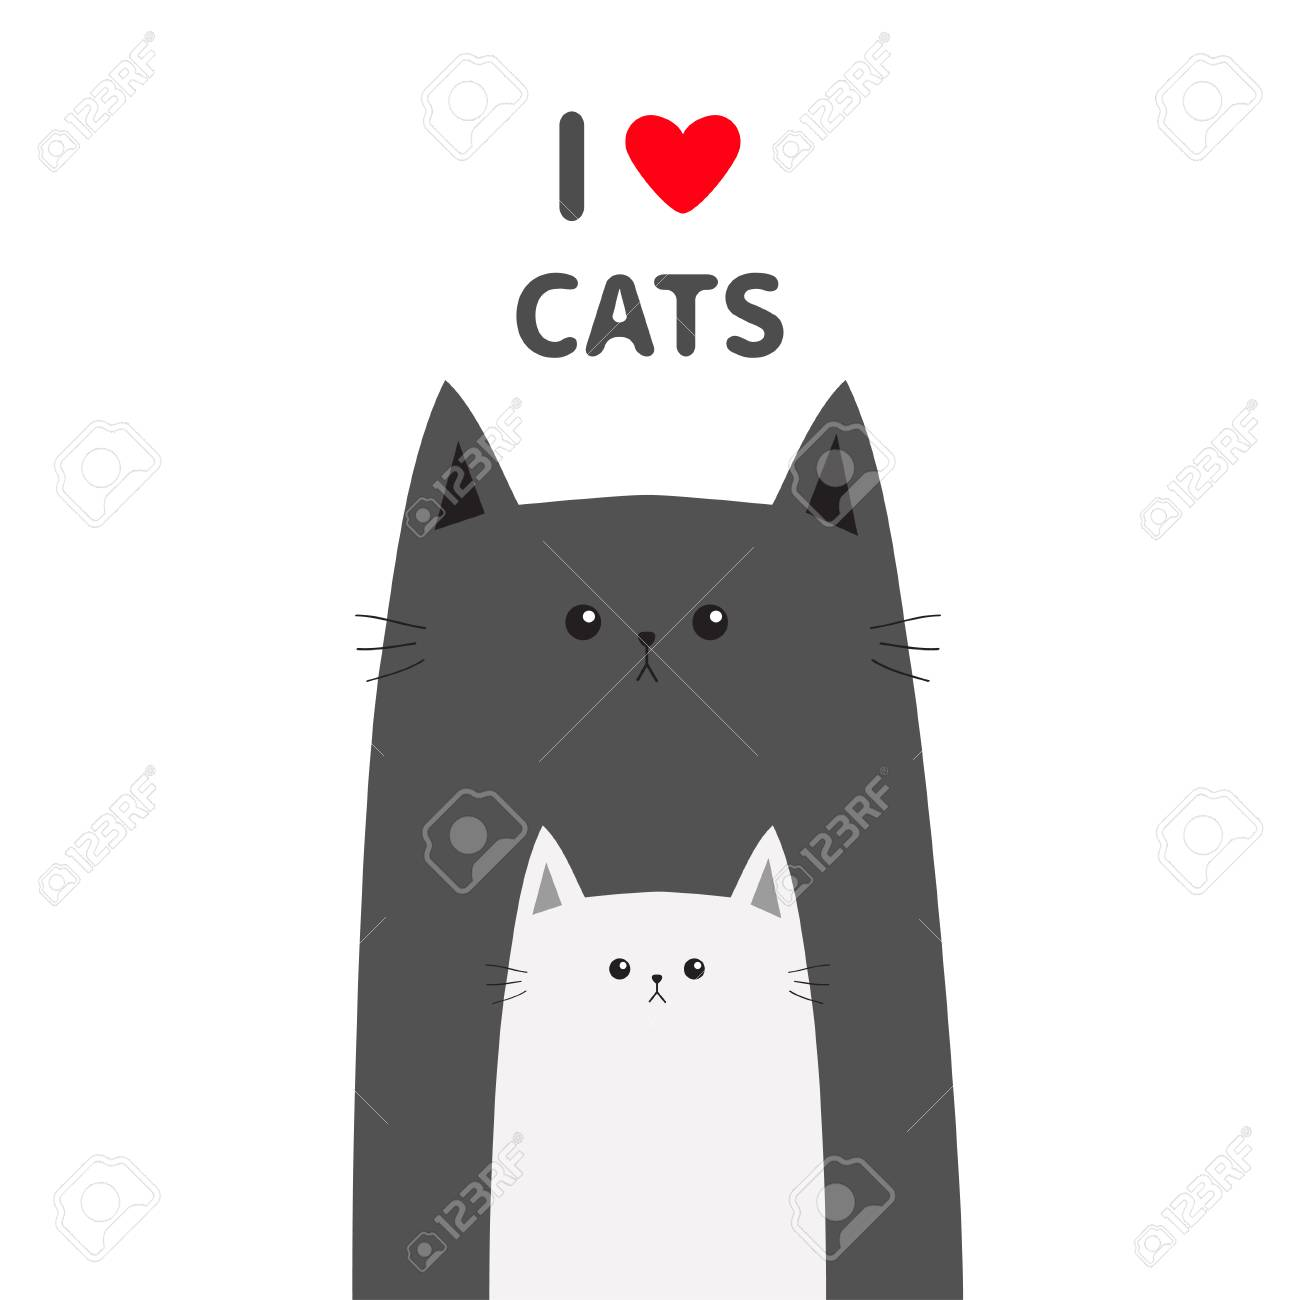 Gray White Cat Head Face Mother Baby Different Size I Love Royalty Free Cliparts Vectors And Stock Illustration Image 87769426